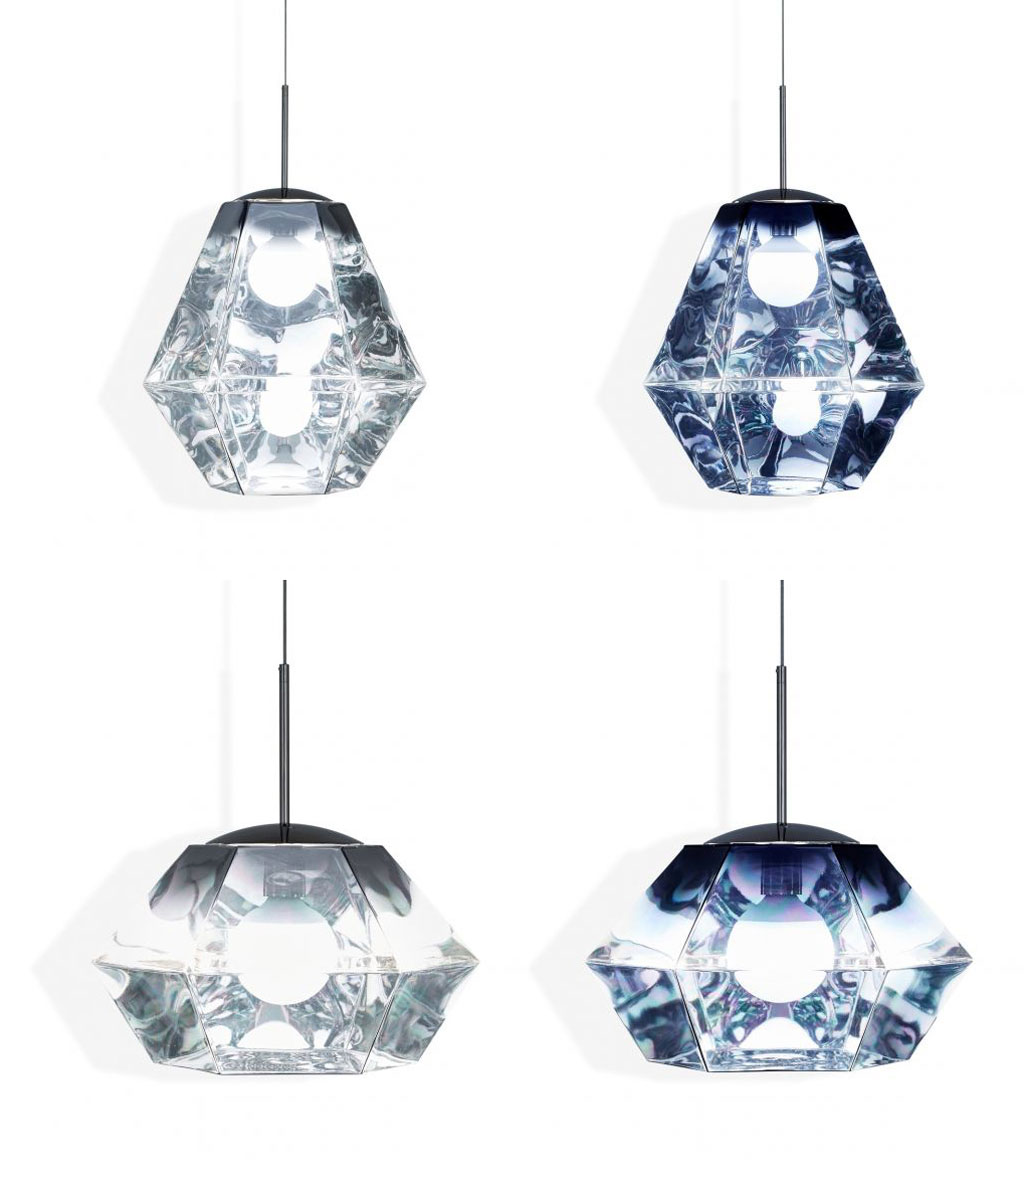 Lighting inspiration feature lighting tom dixon Tom dixon lighting